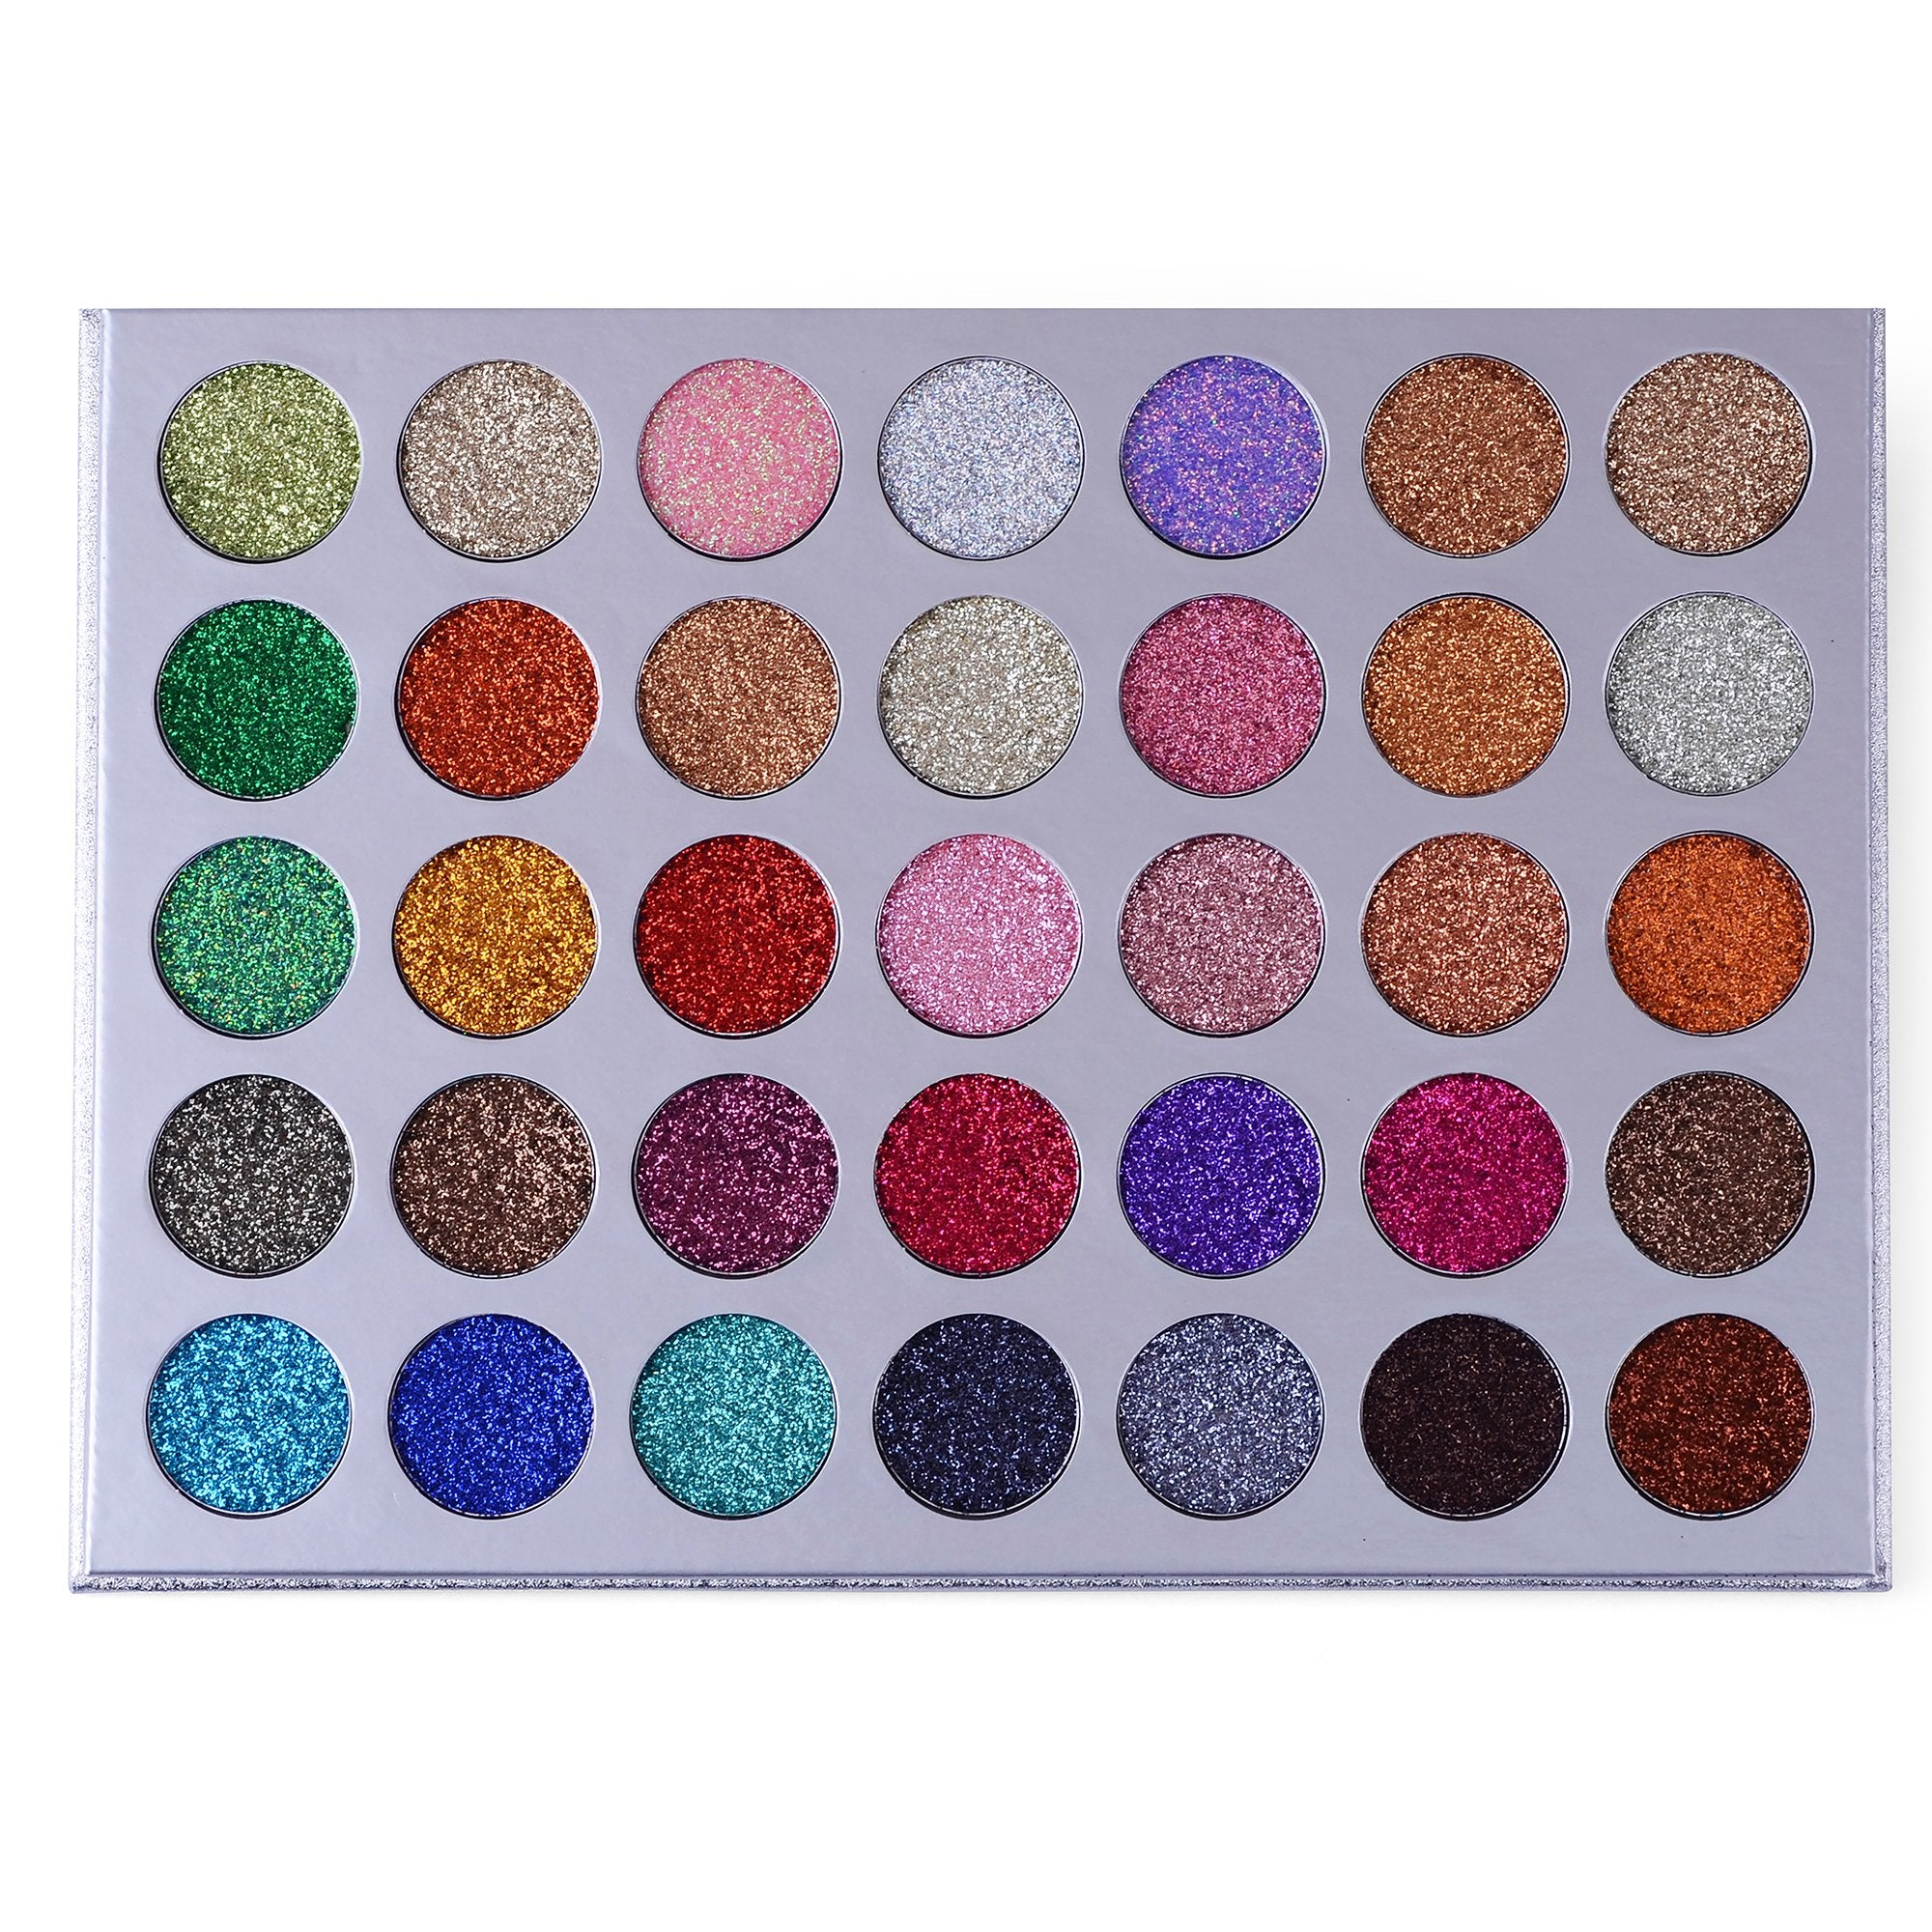 ES21 35 GALAXY STARDUST SHIMMER GLITTER POWDER KIT